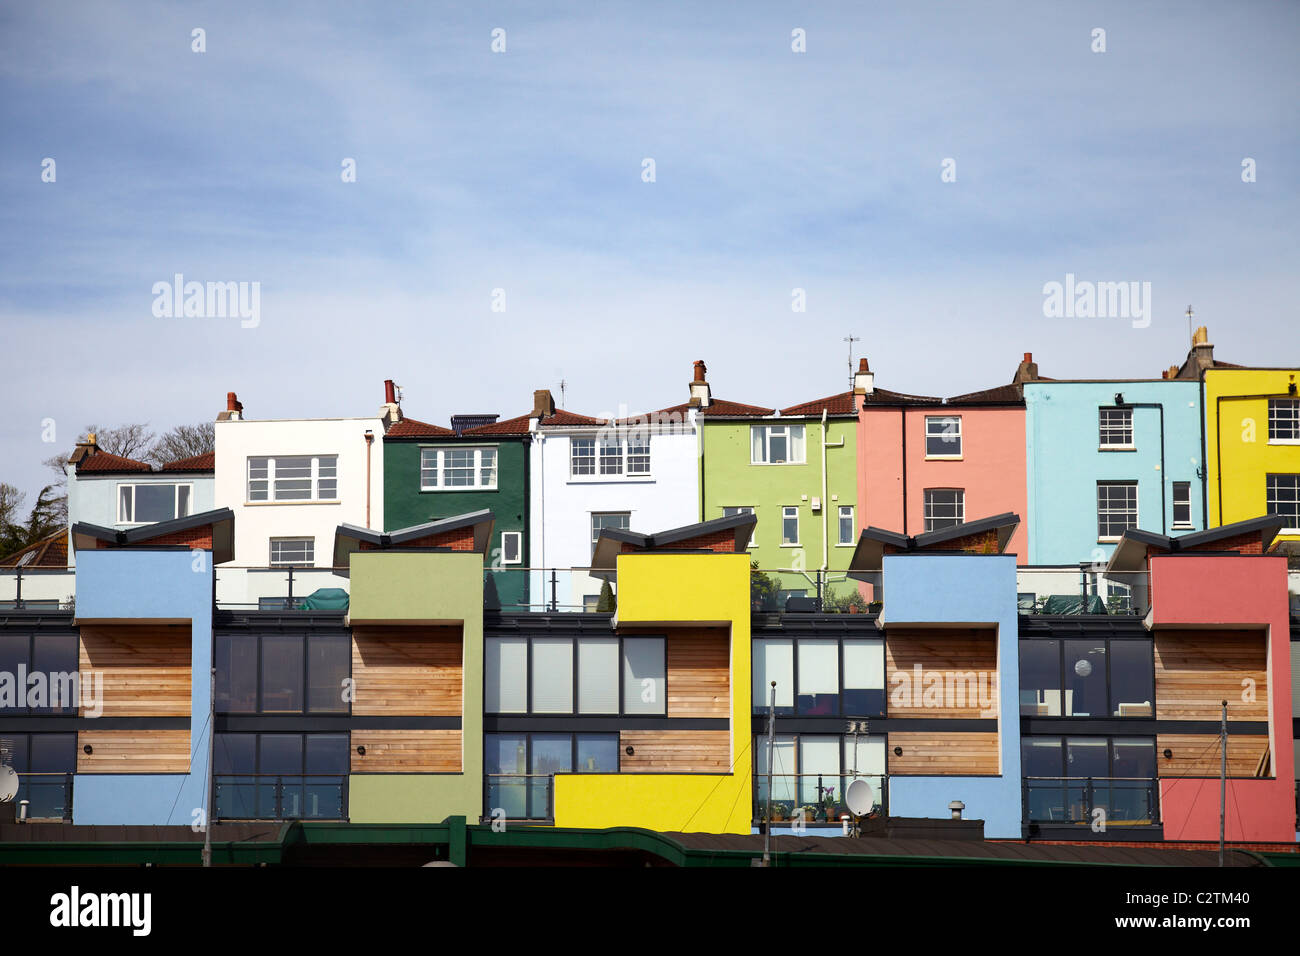 Colourful Terraced Houses on Bristol Waterside Stock Photo